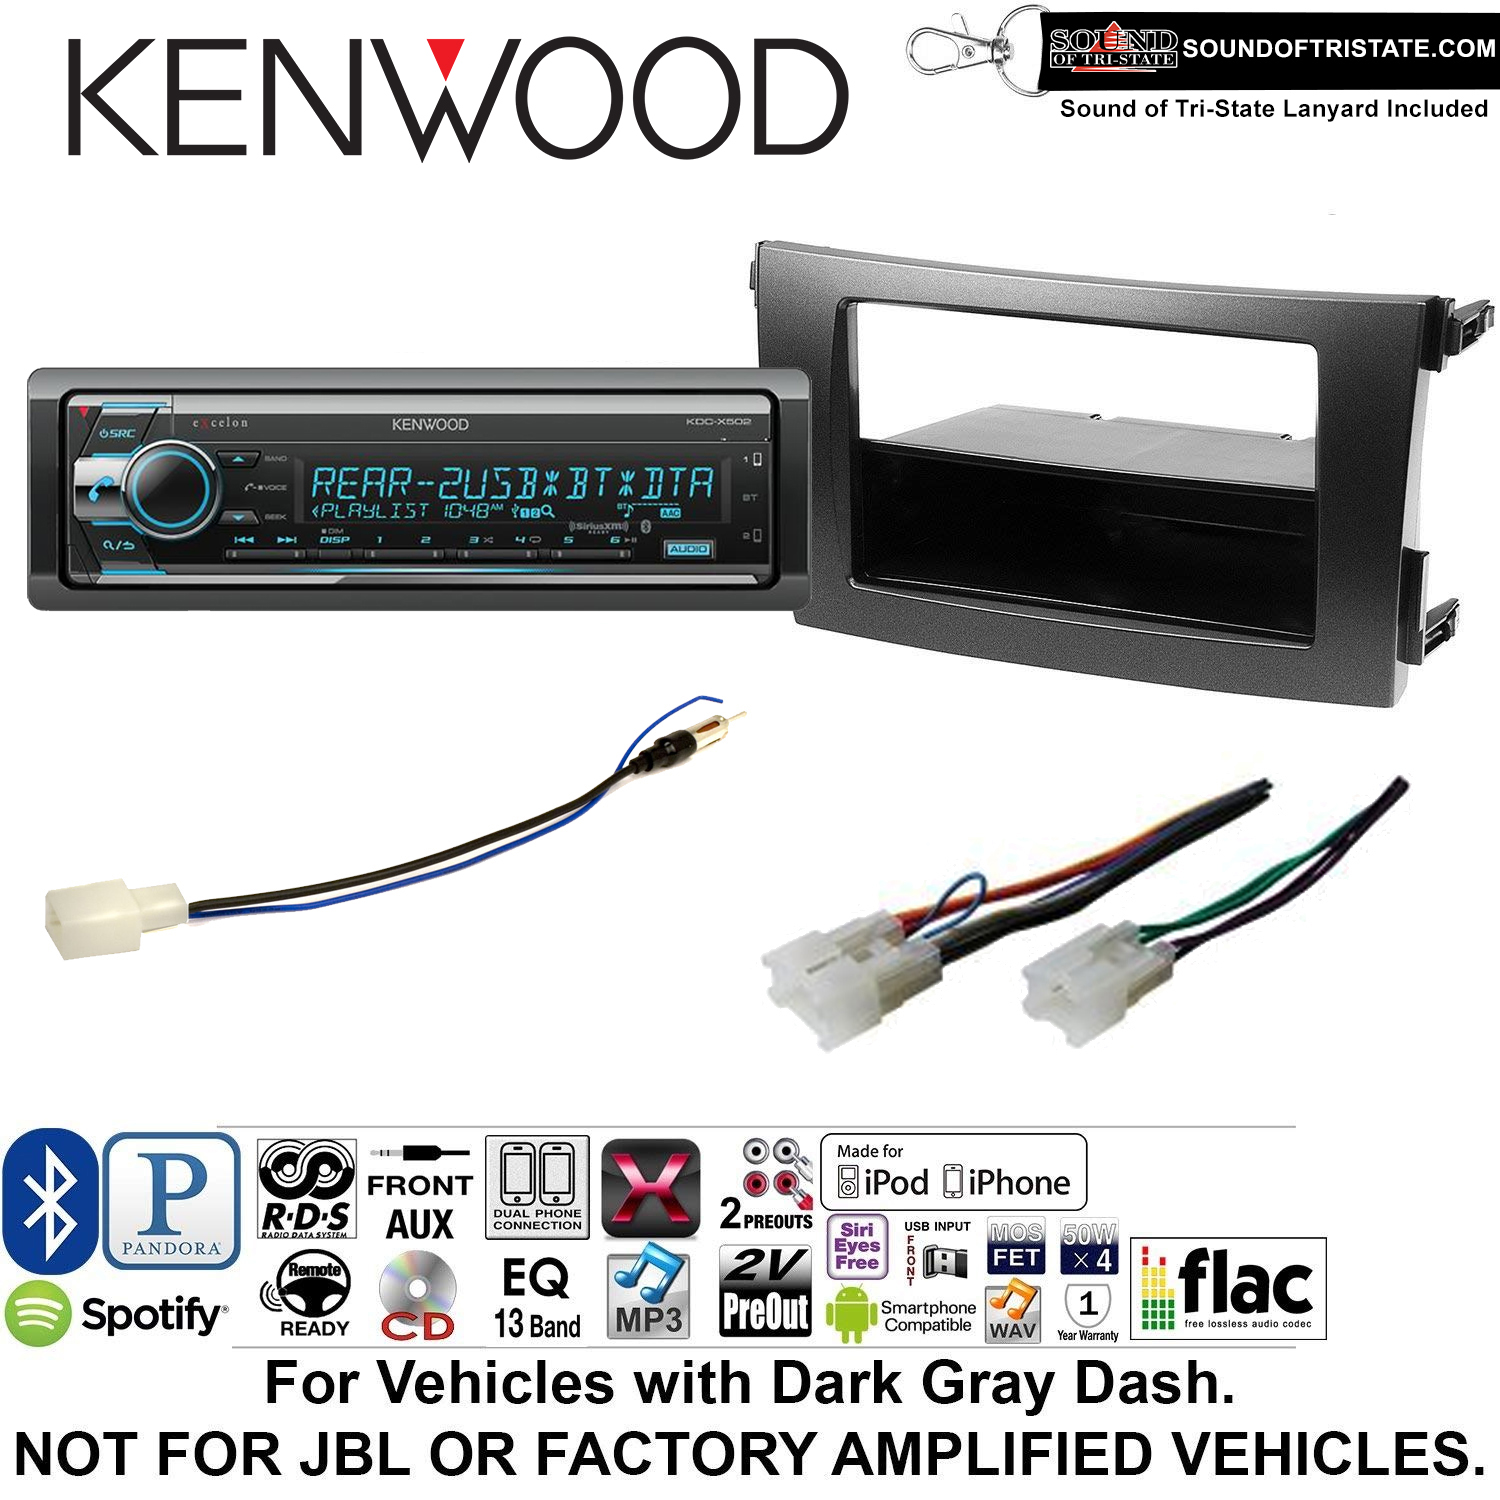 Kenwood KDCX502 Double Din Radio Install Kit with Bluetooth, CD Player, USB/AUX Fits 2009-2013 Non Amplified Toyota Corolla (Dark Gray) and a SOTS lanyard included